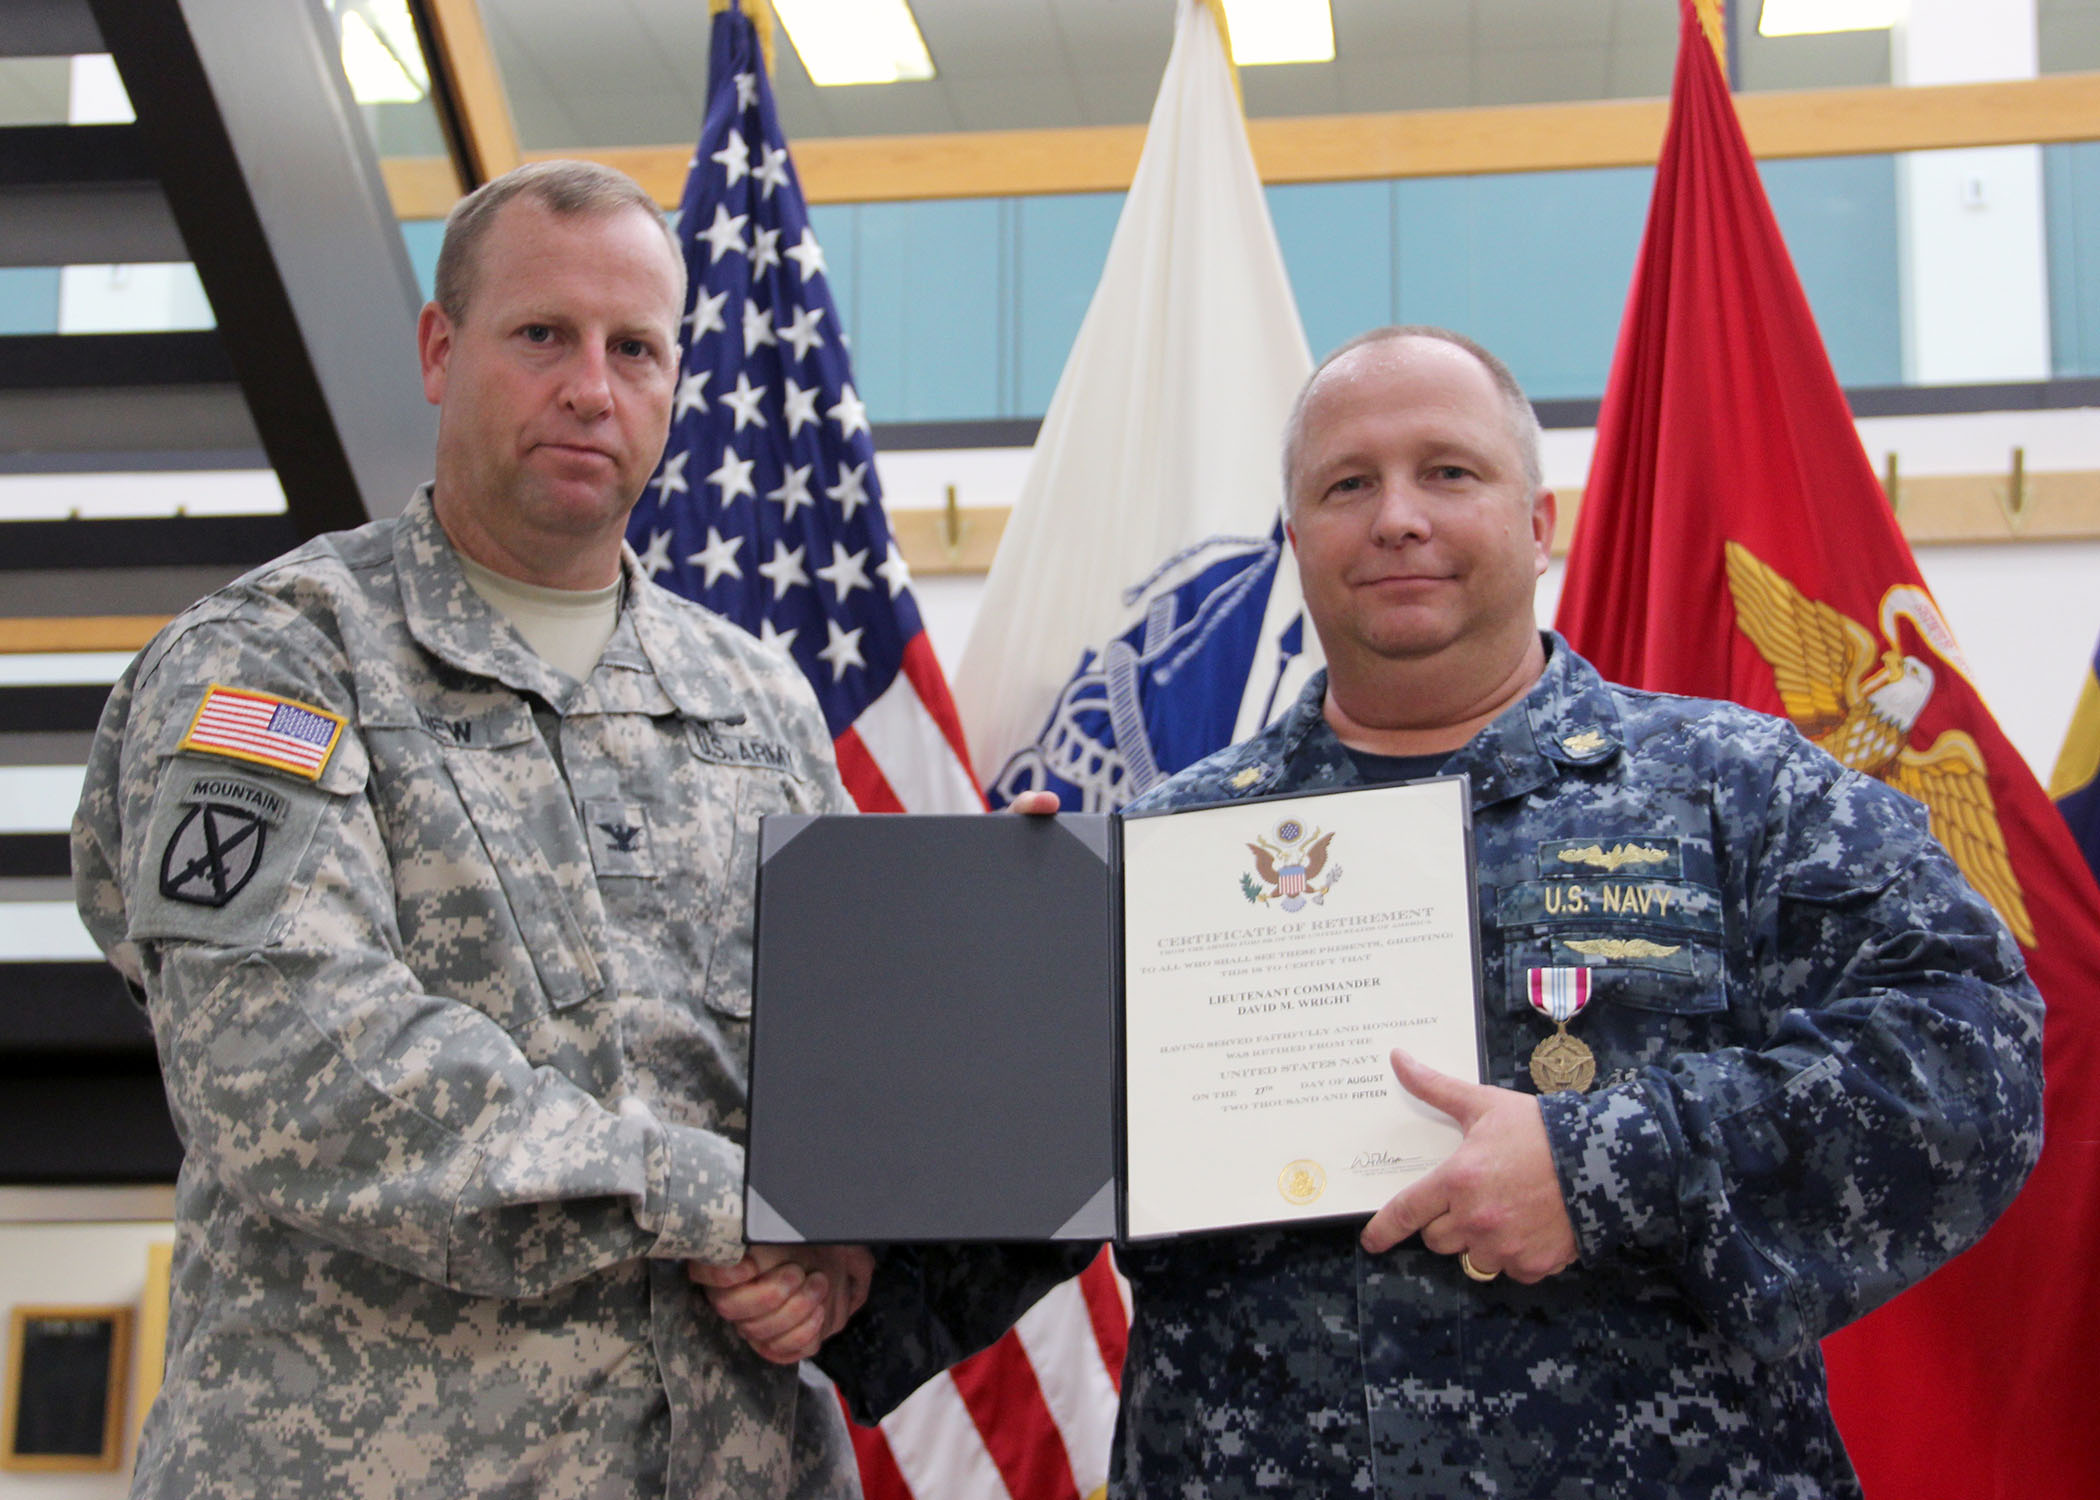 Susquehanna's Wright retires from Navy service > Defense